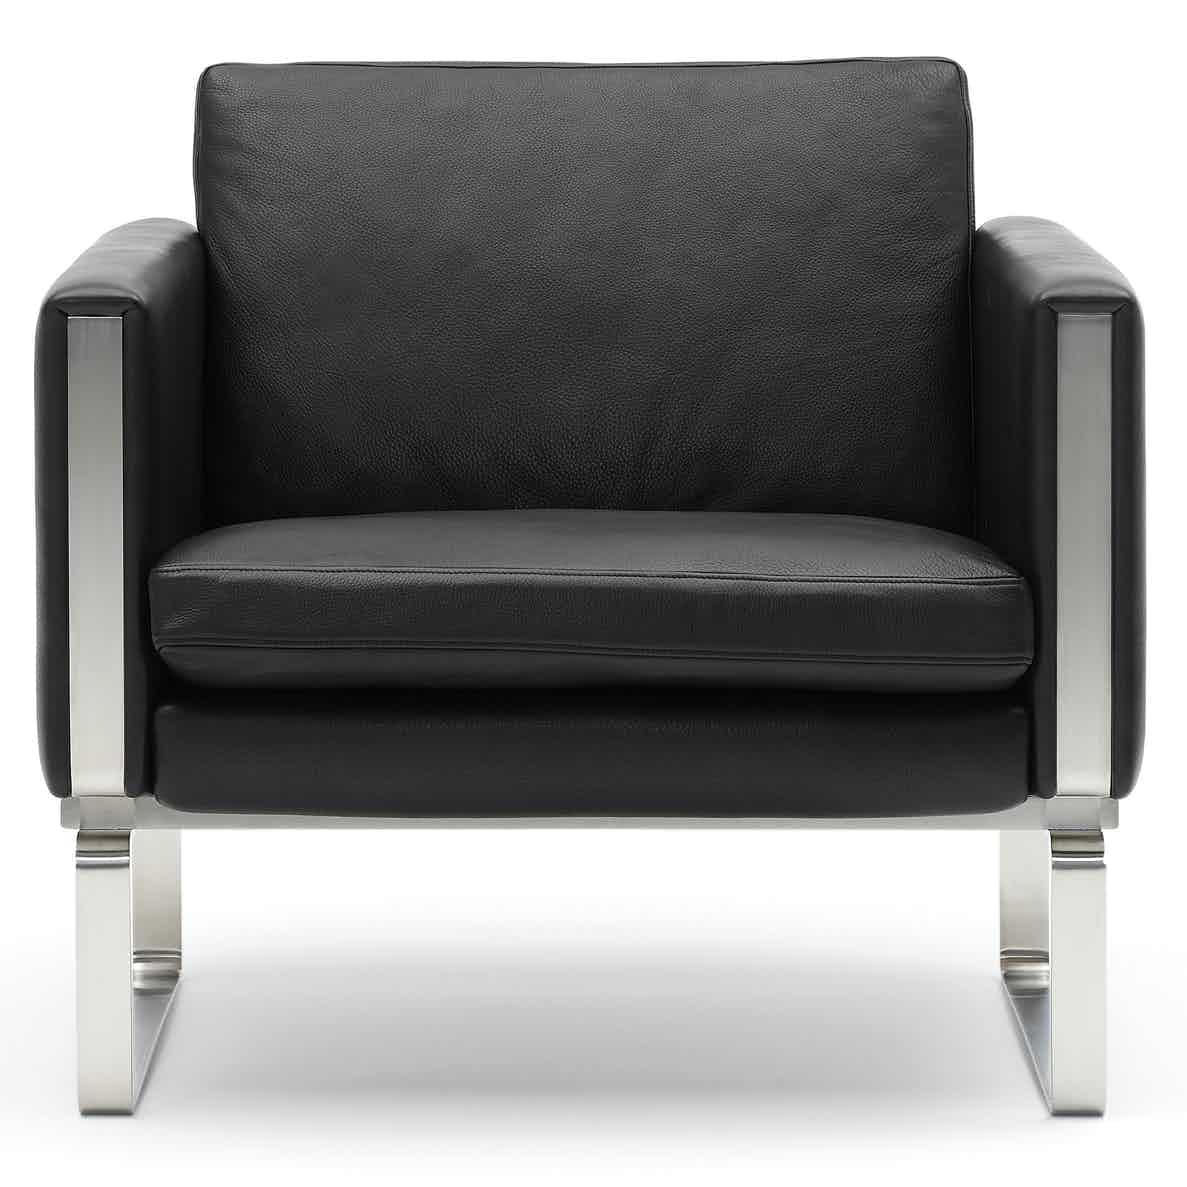 Carl-hansen-son-front-black-ch101-haute-living